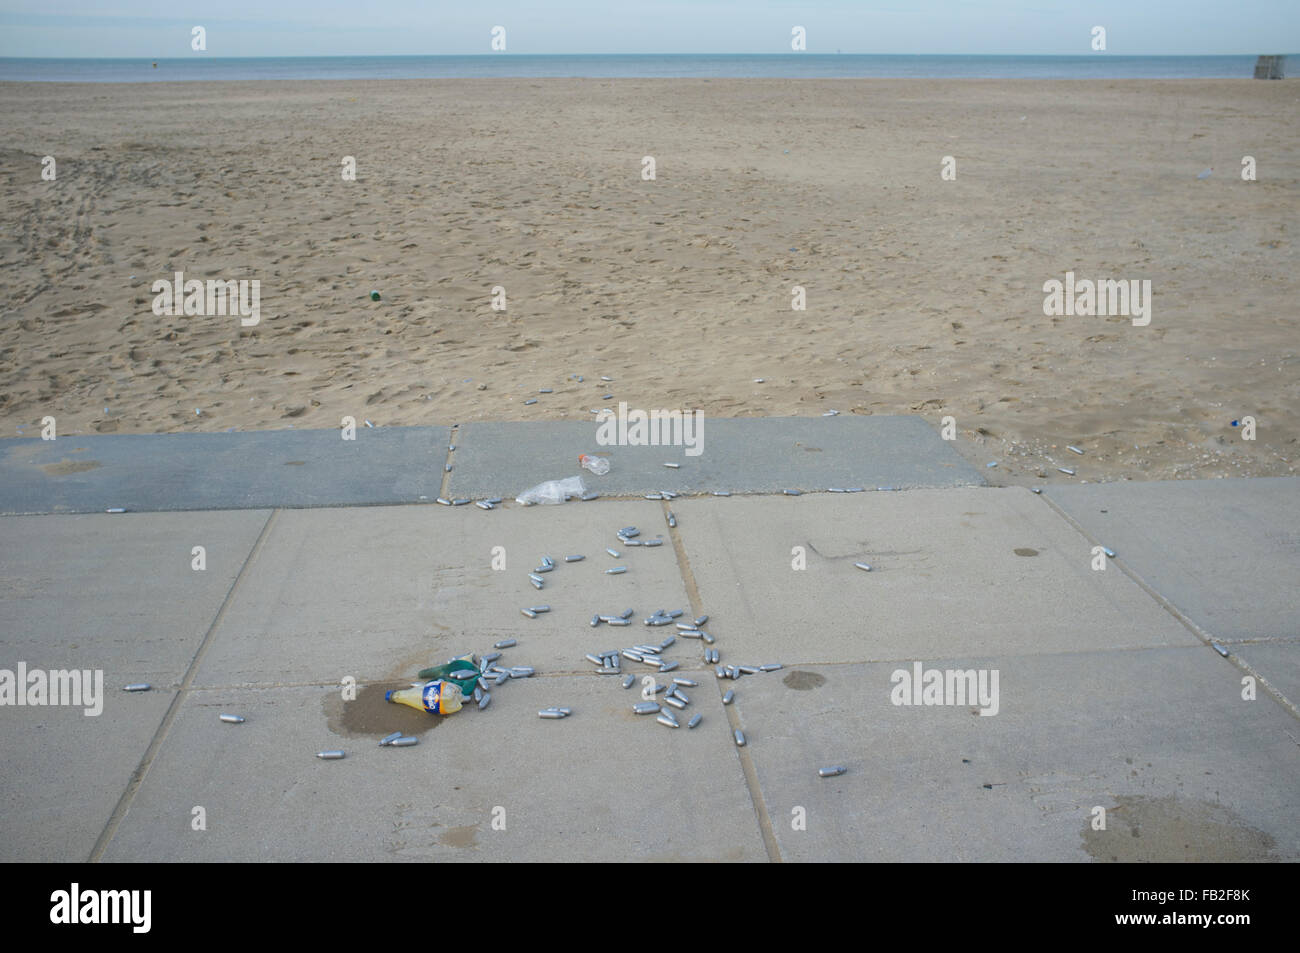 Laughing gas (nitrous oxide) canisters at the seaside - Stock Image